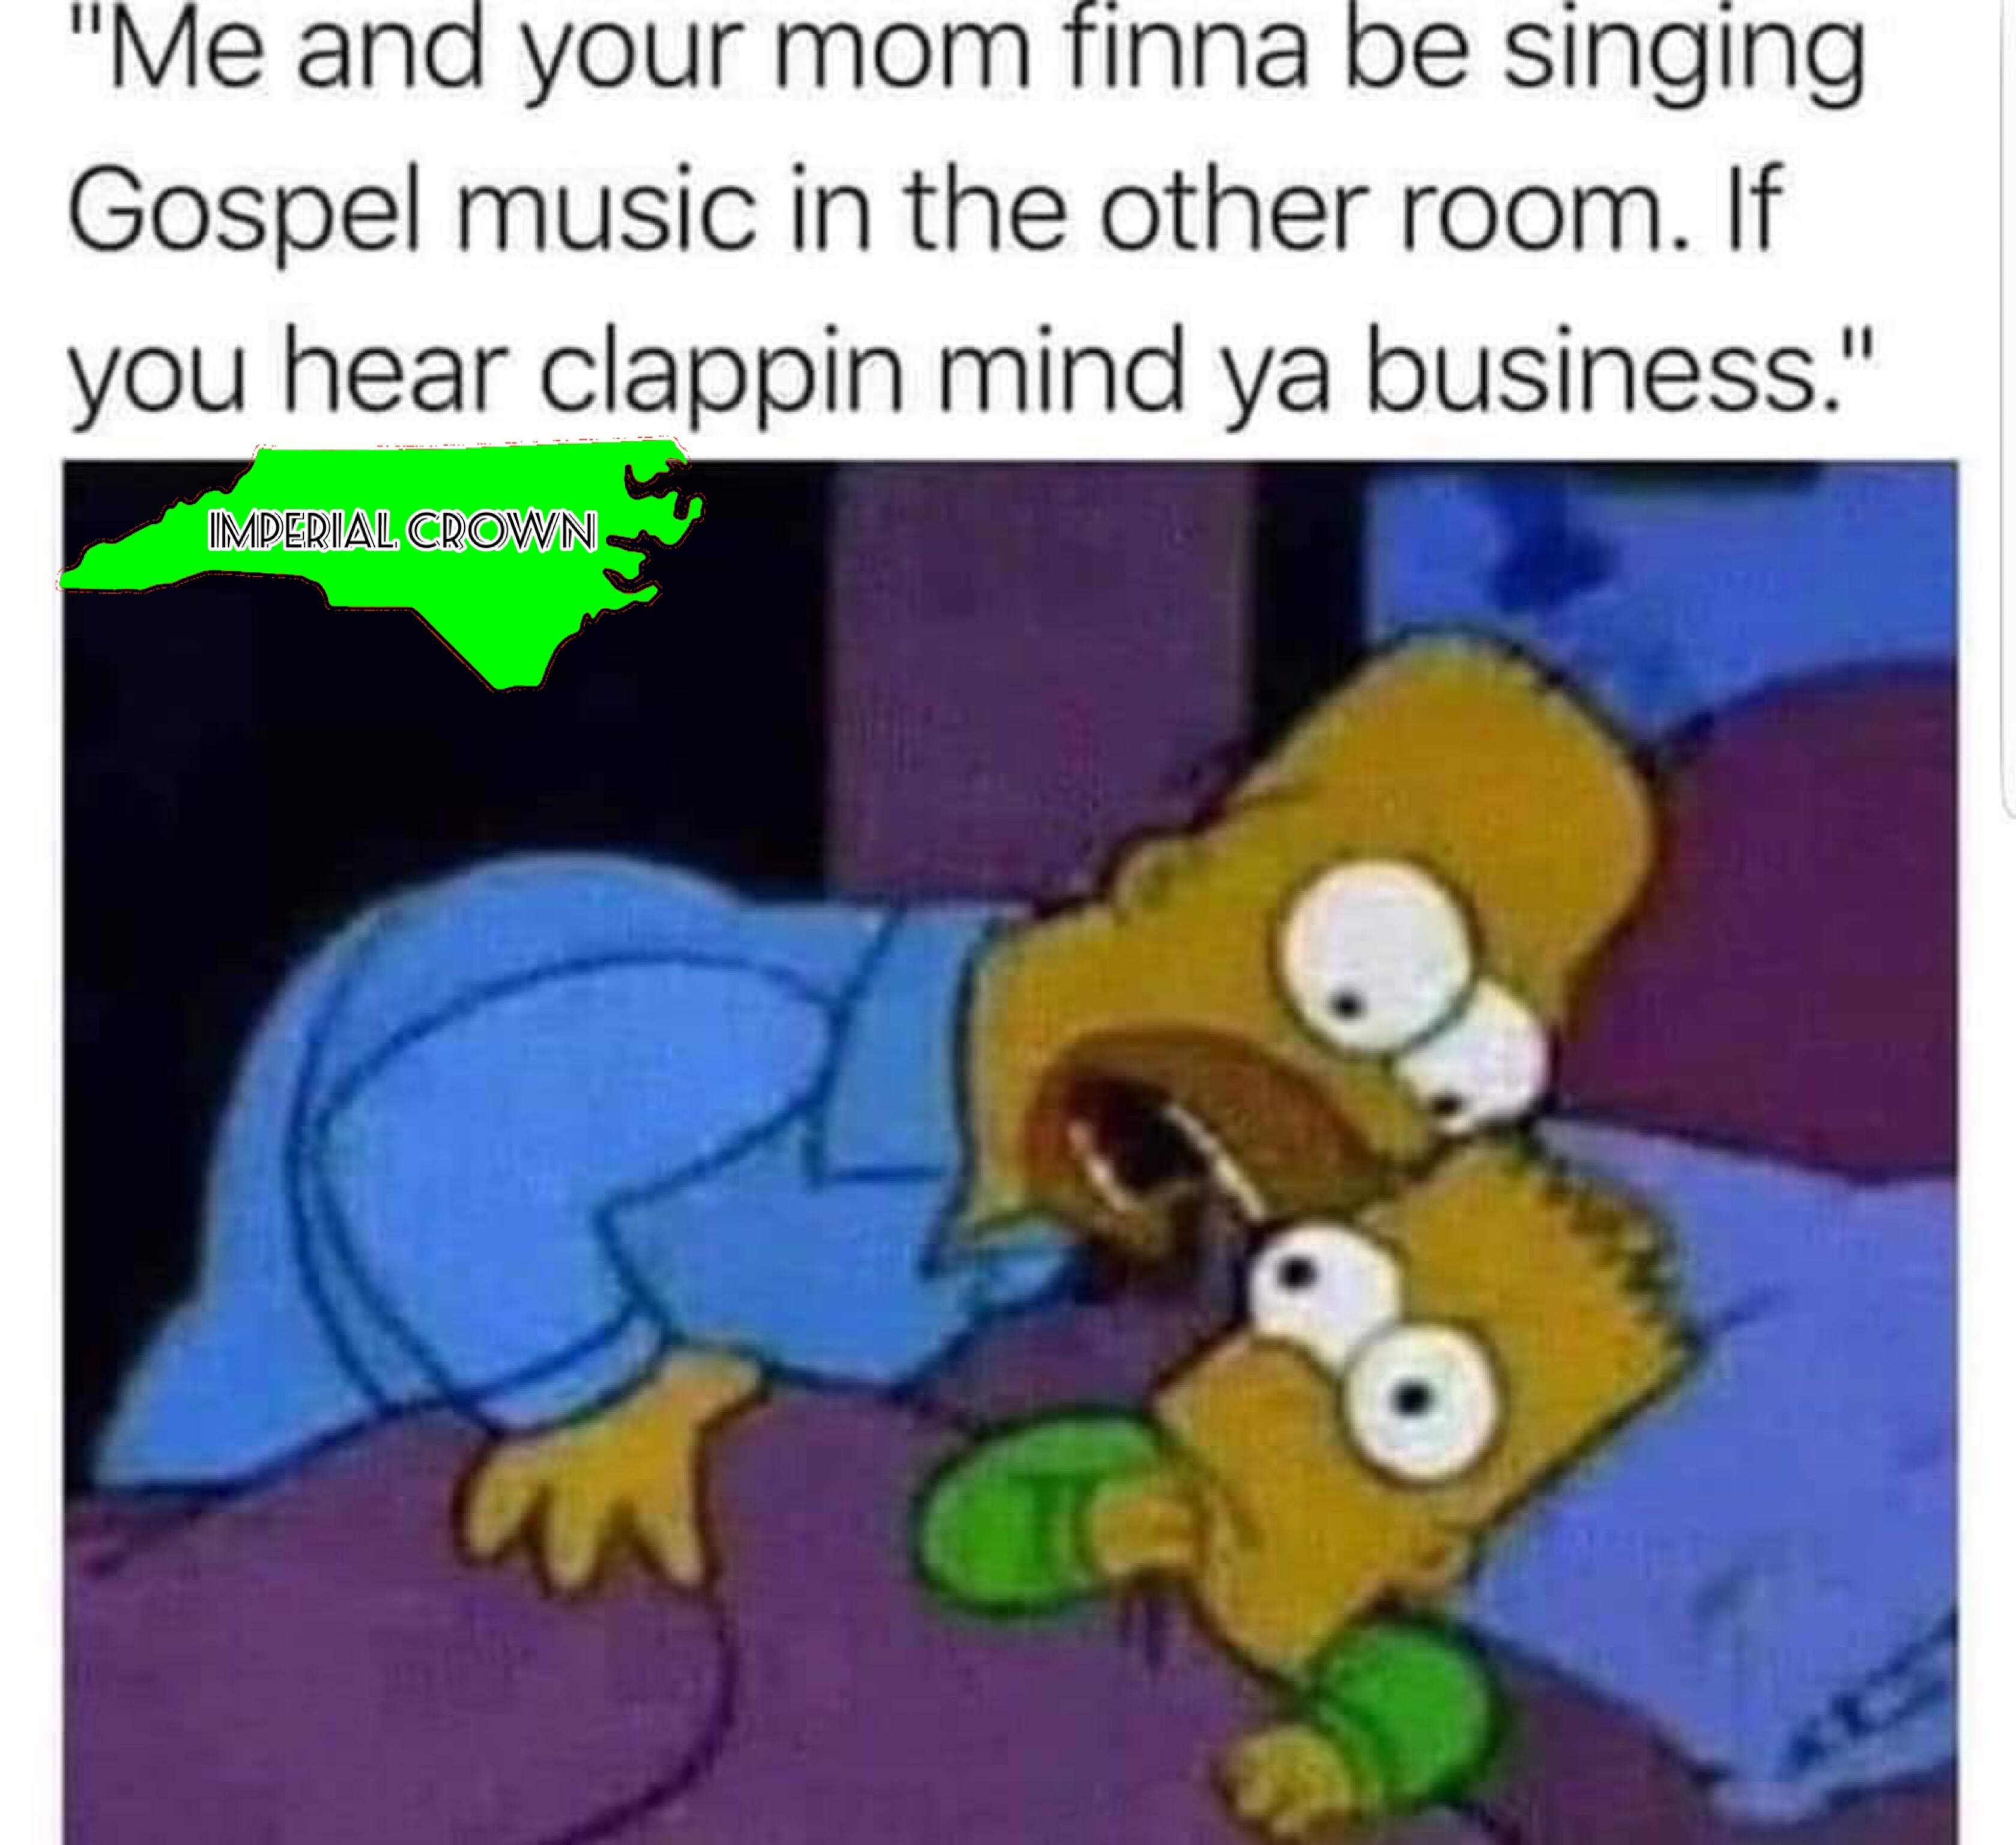 Me and your mom finna be singing gospel music in the other room….